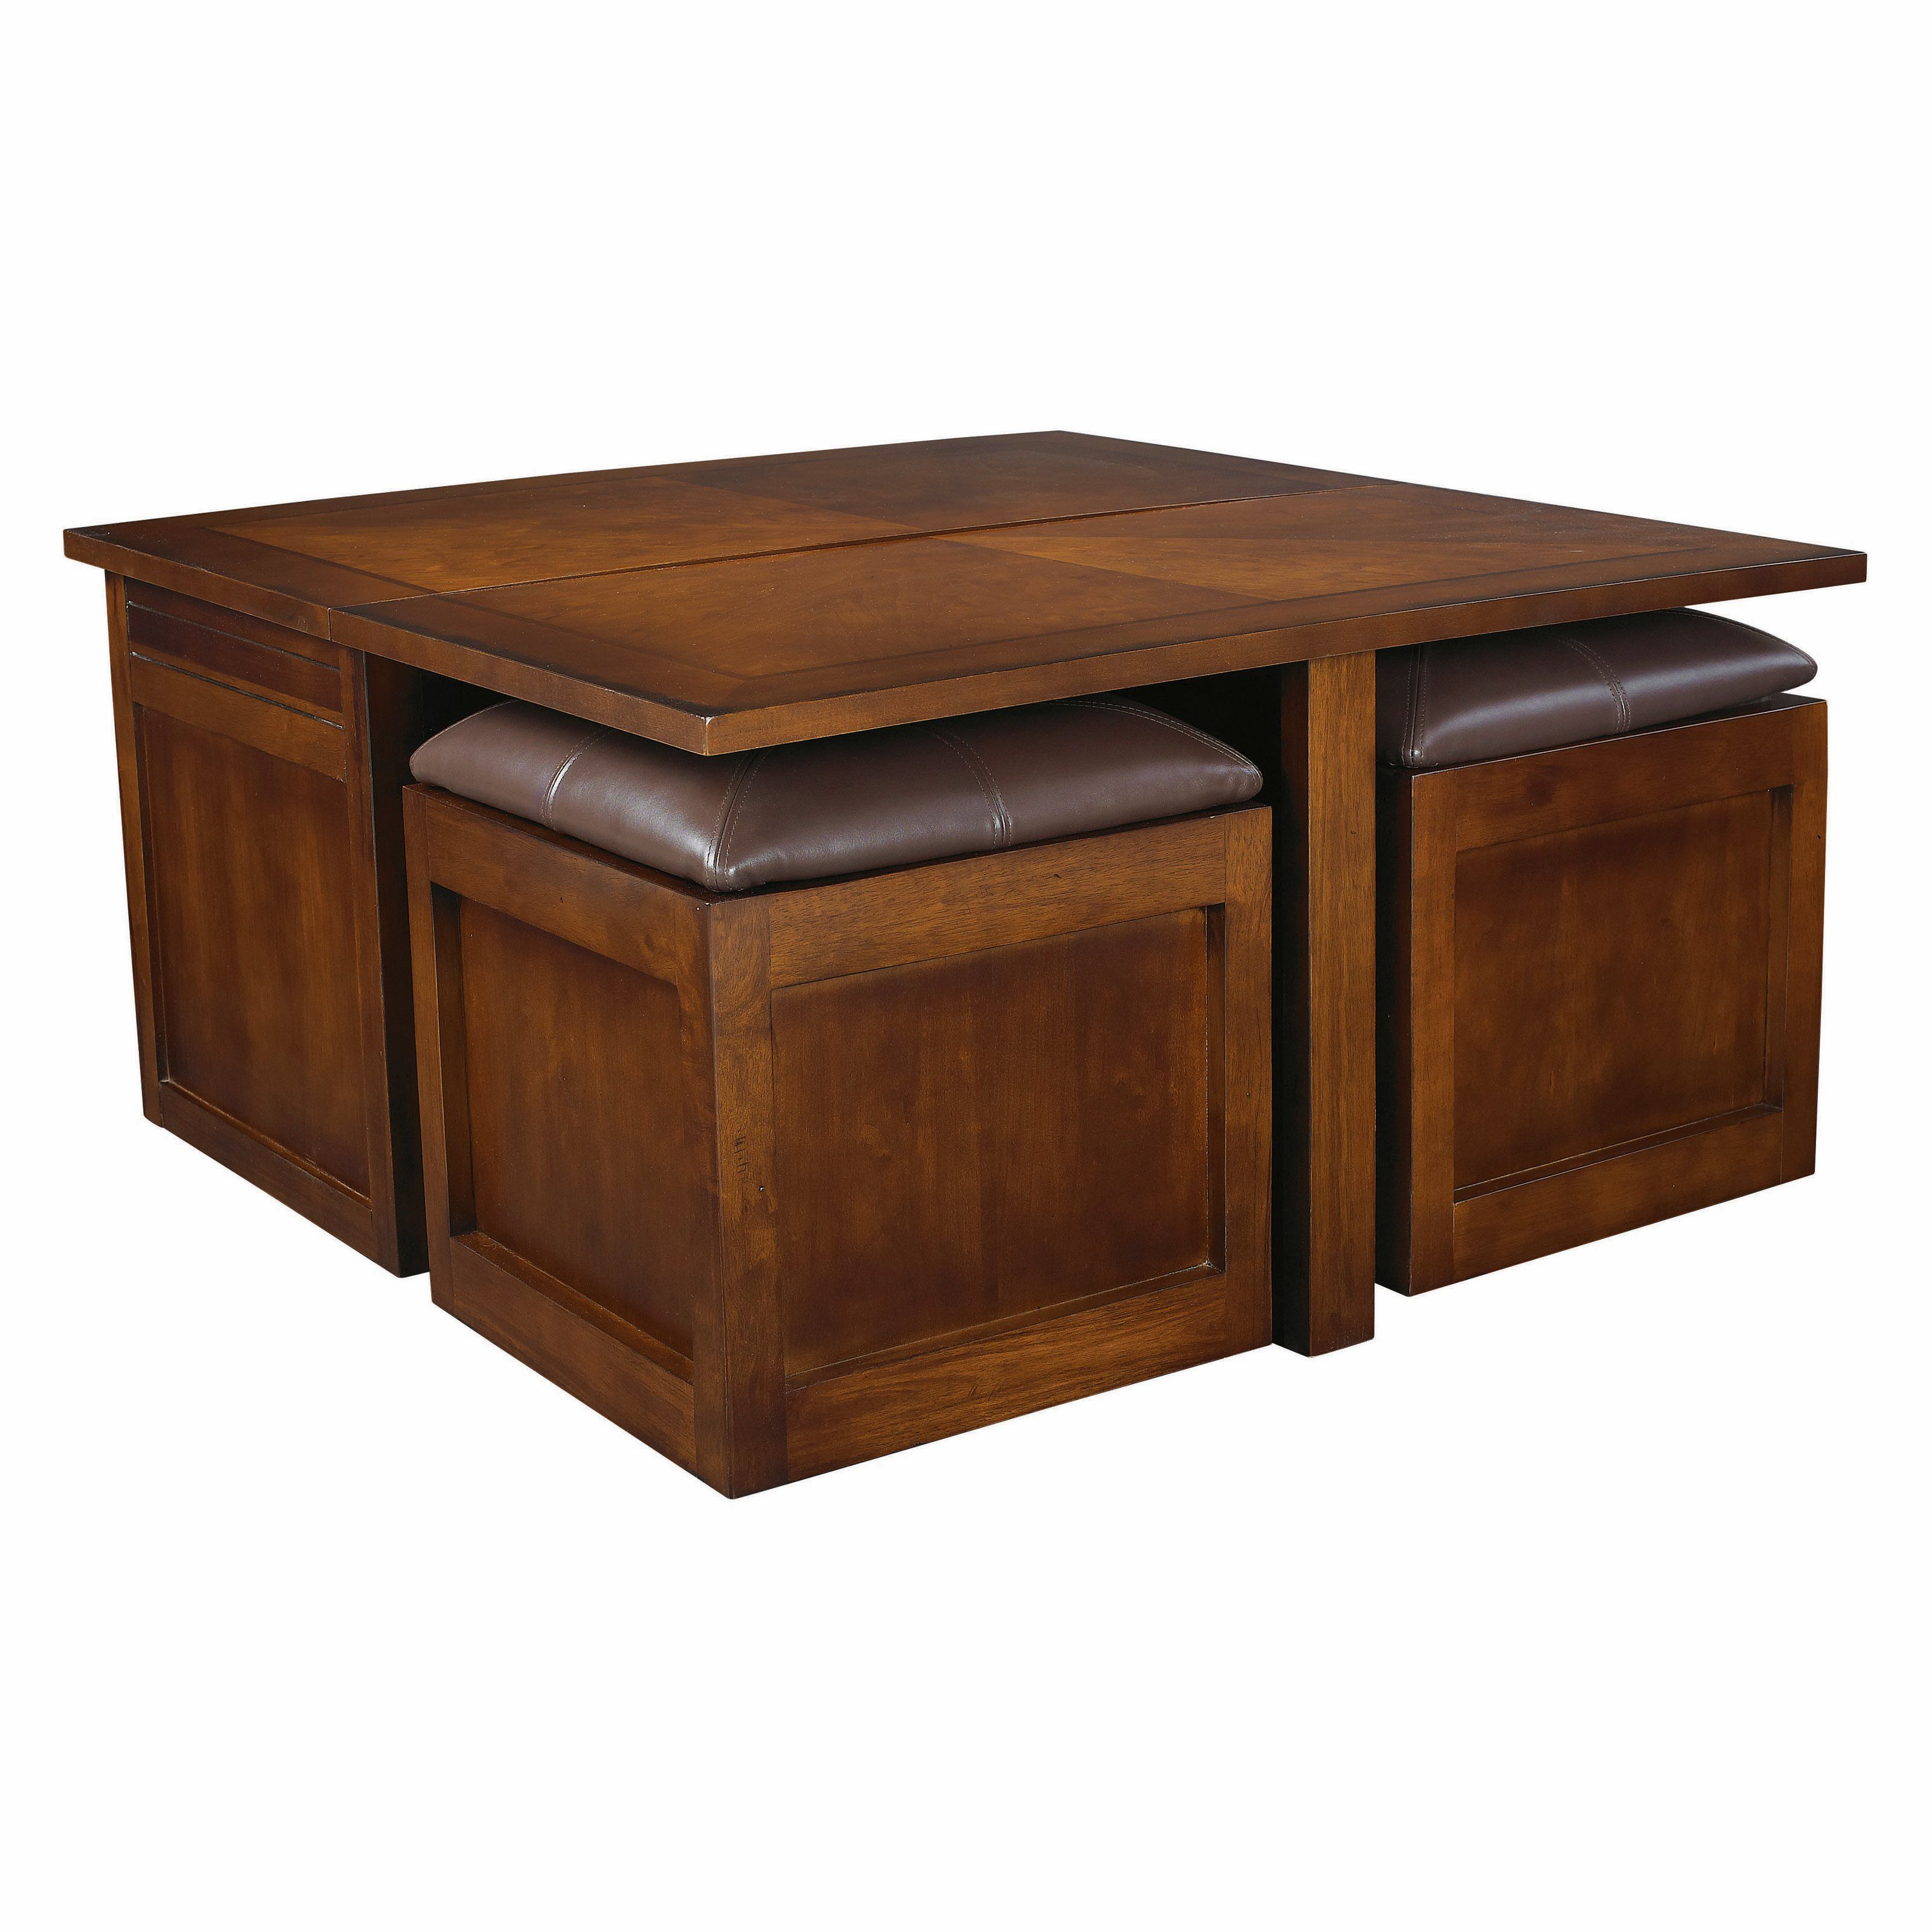 Square Dining Table With Storage Have To Have It Hammary Nuance Lift Top Square Coffee